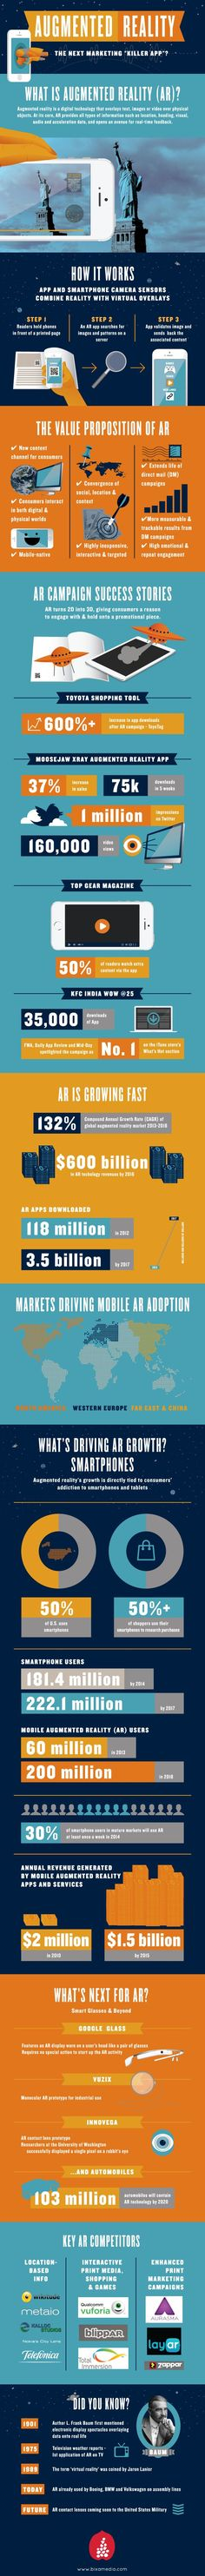 """Infographic: Augmented Reality - The Next Marketing """"Killer App""""?"""